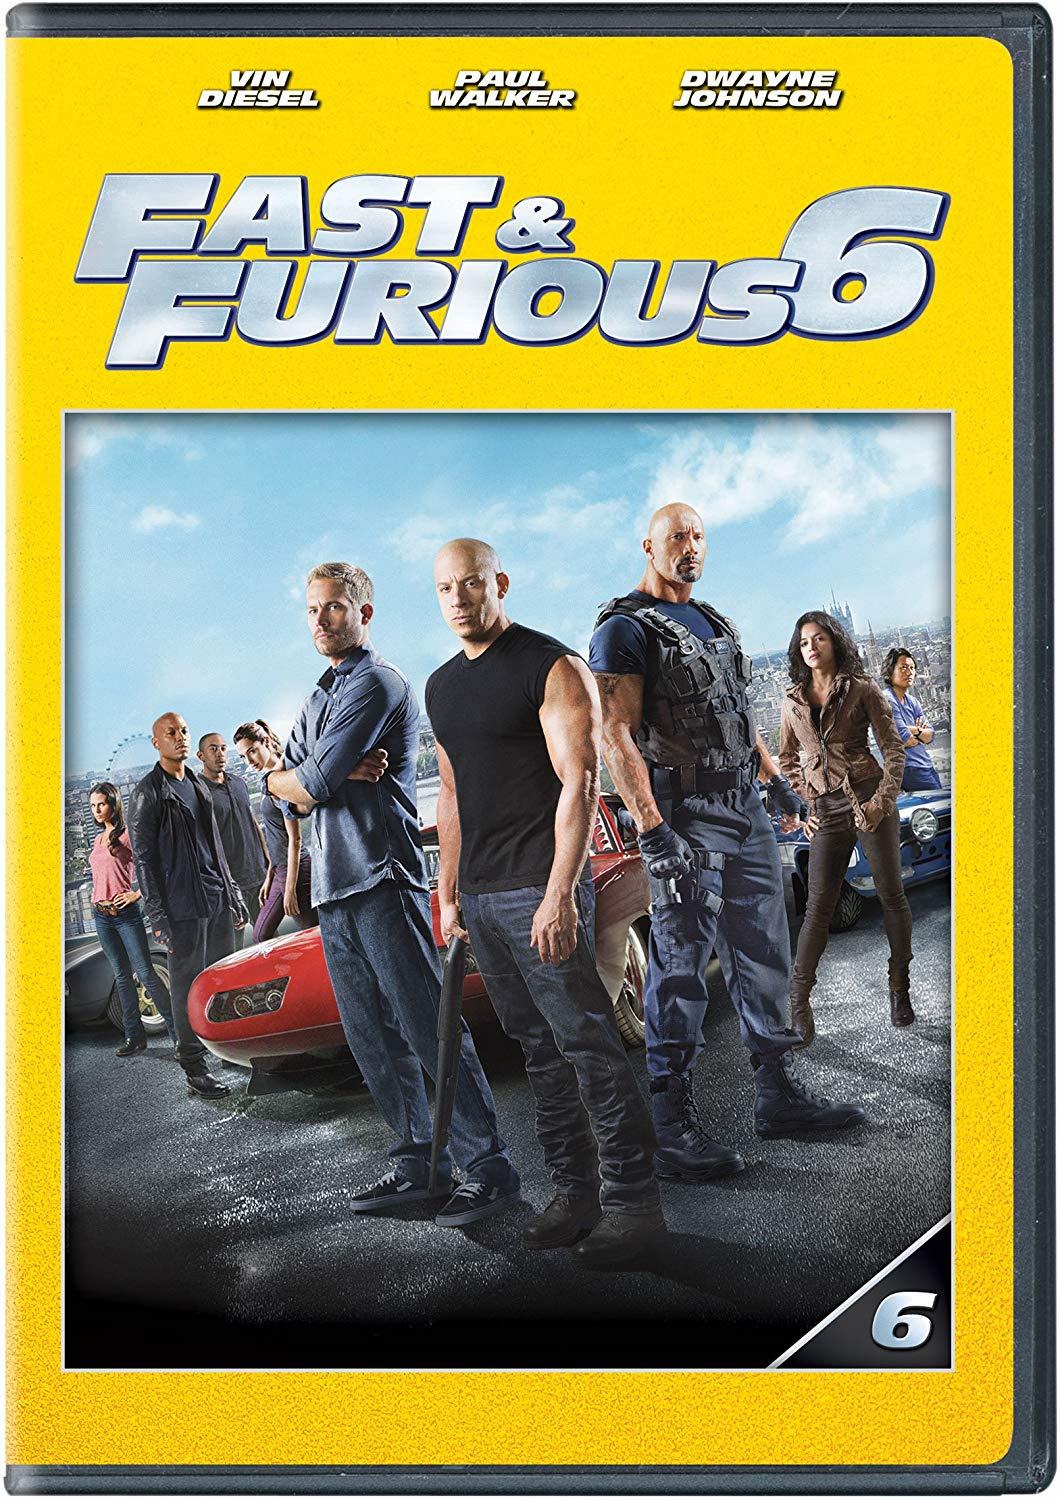 Fast & Furious 6 DVD (USED)